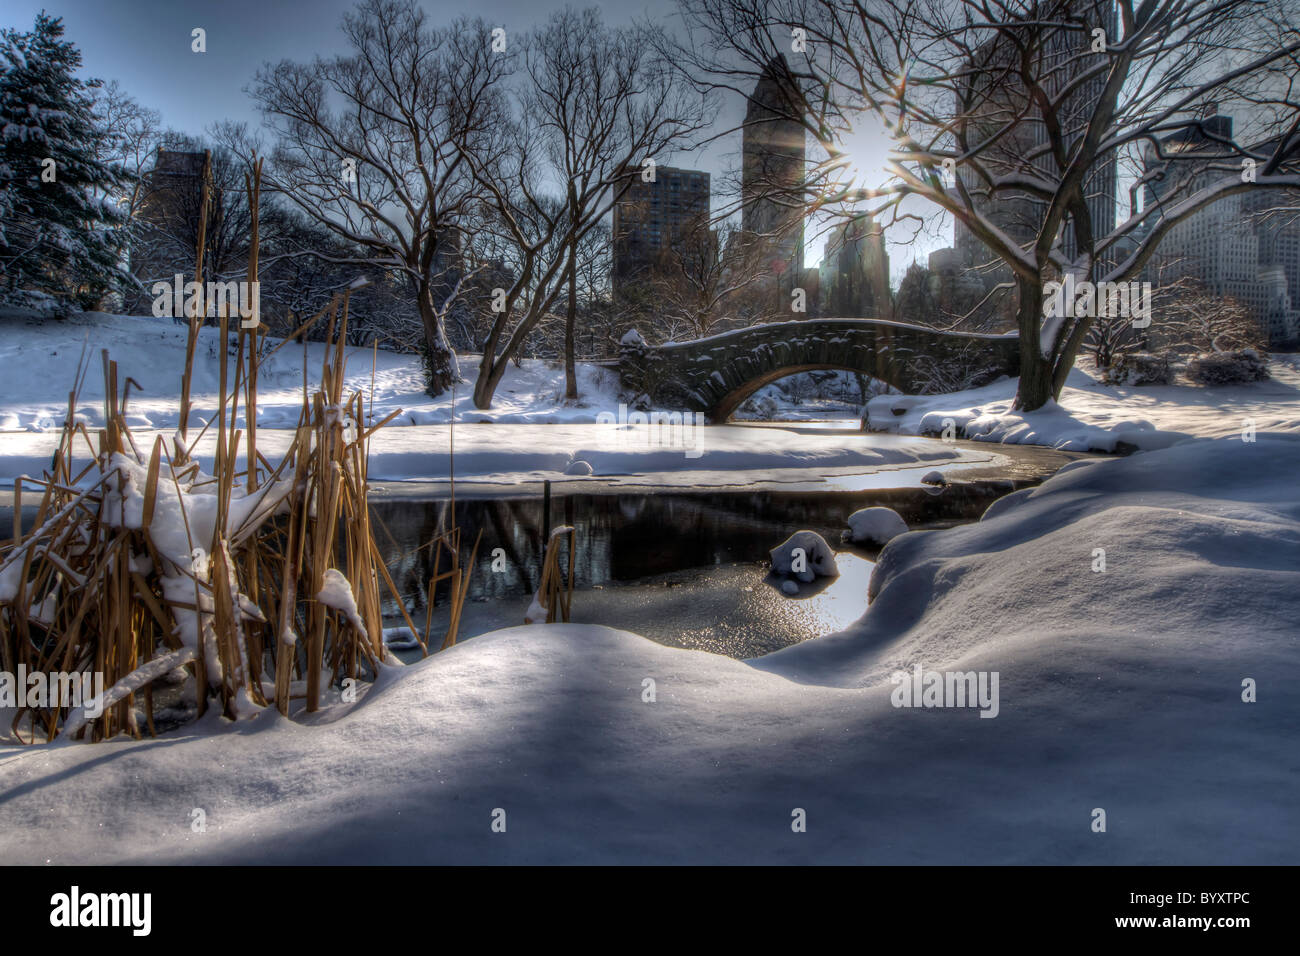 Gapstow Bridge in Central Park the Morning After a Snowstorm - Stock Image